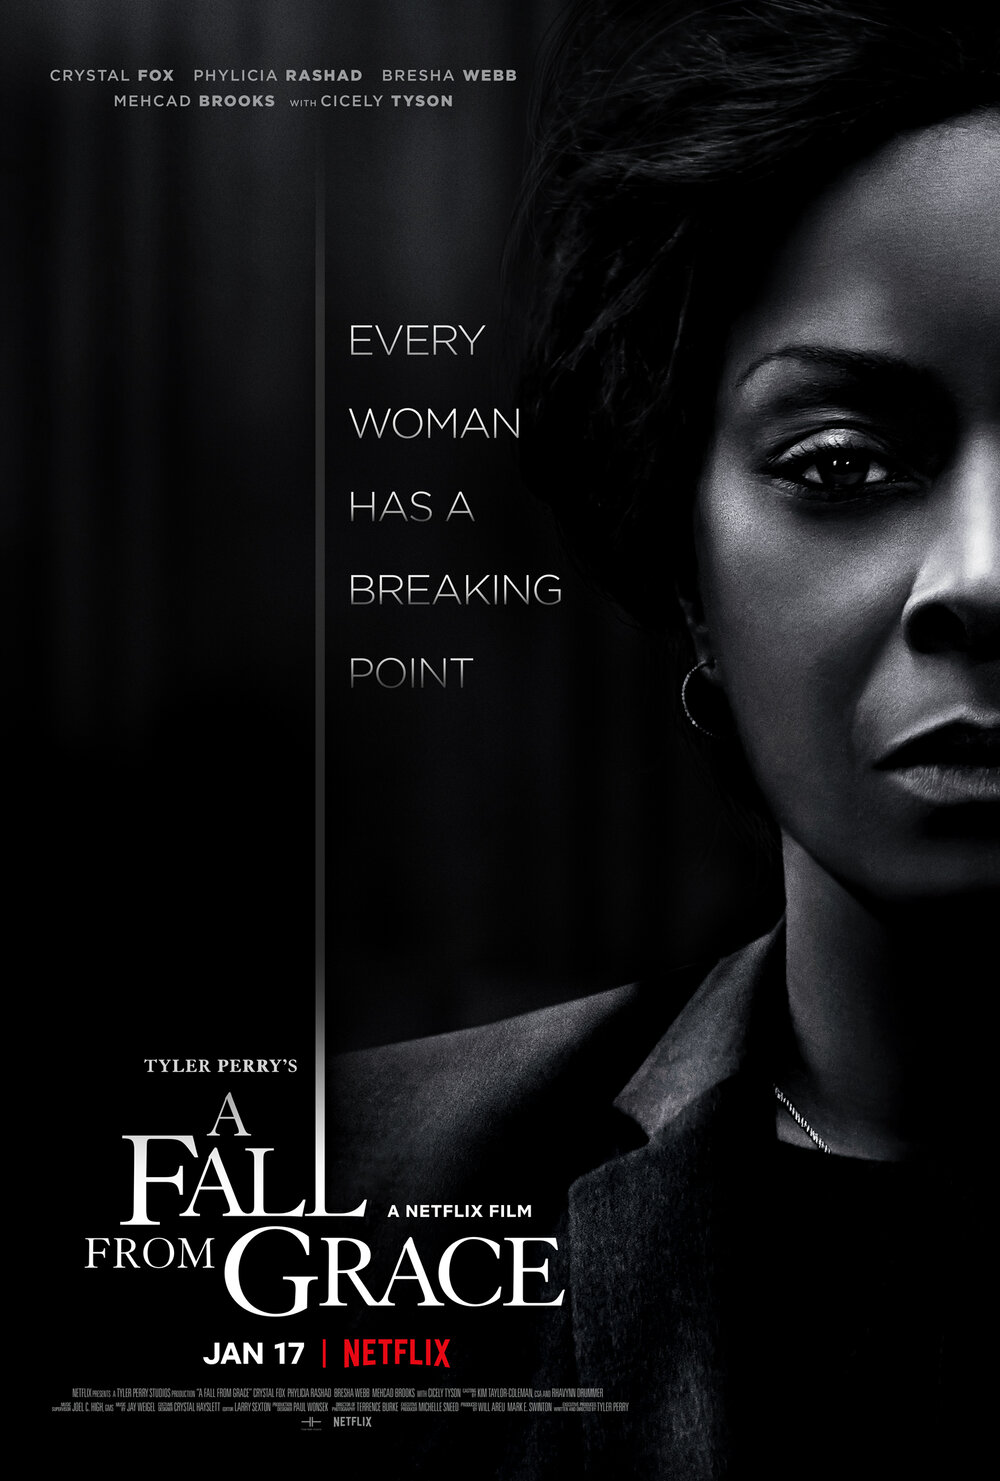 A Fall from From Grace by @TylerPerry on @Netflix